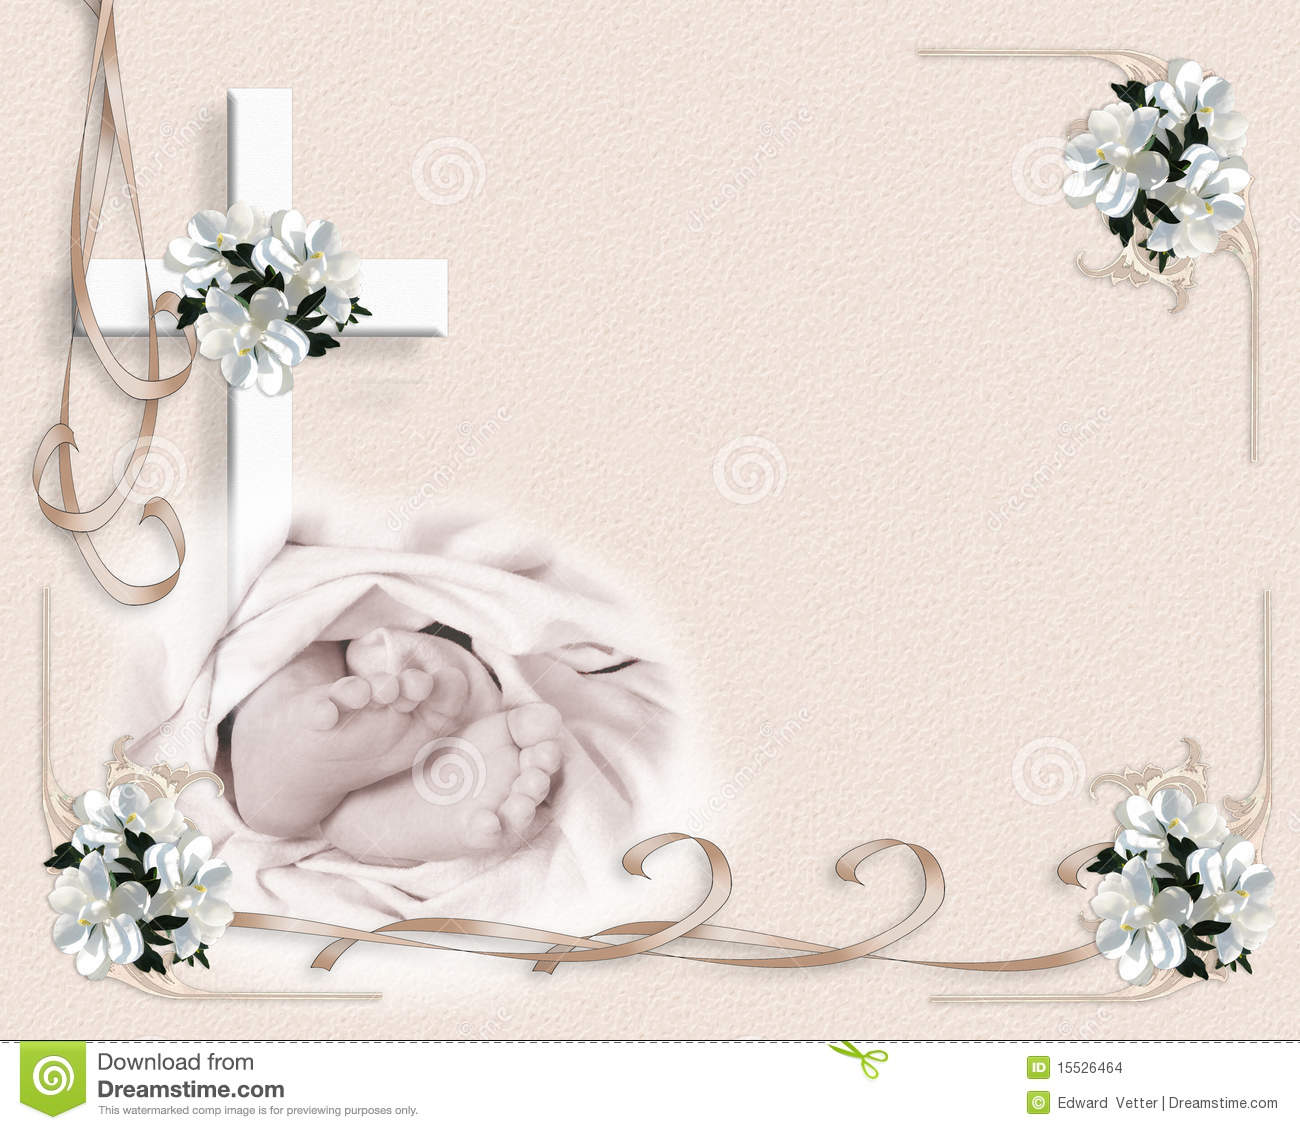 Christening Baptism Invitation Stock Images - Image: 15526464